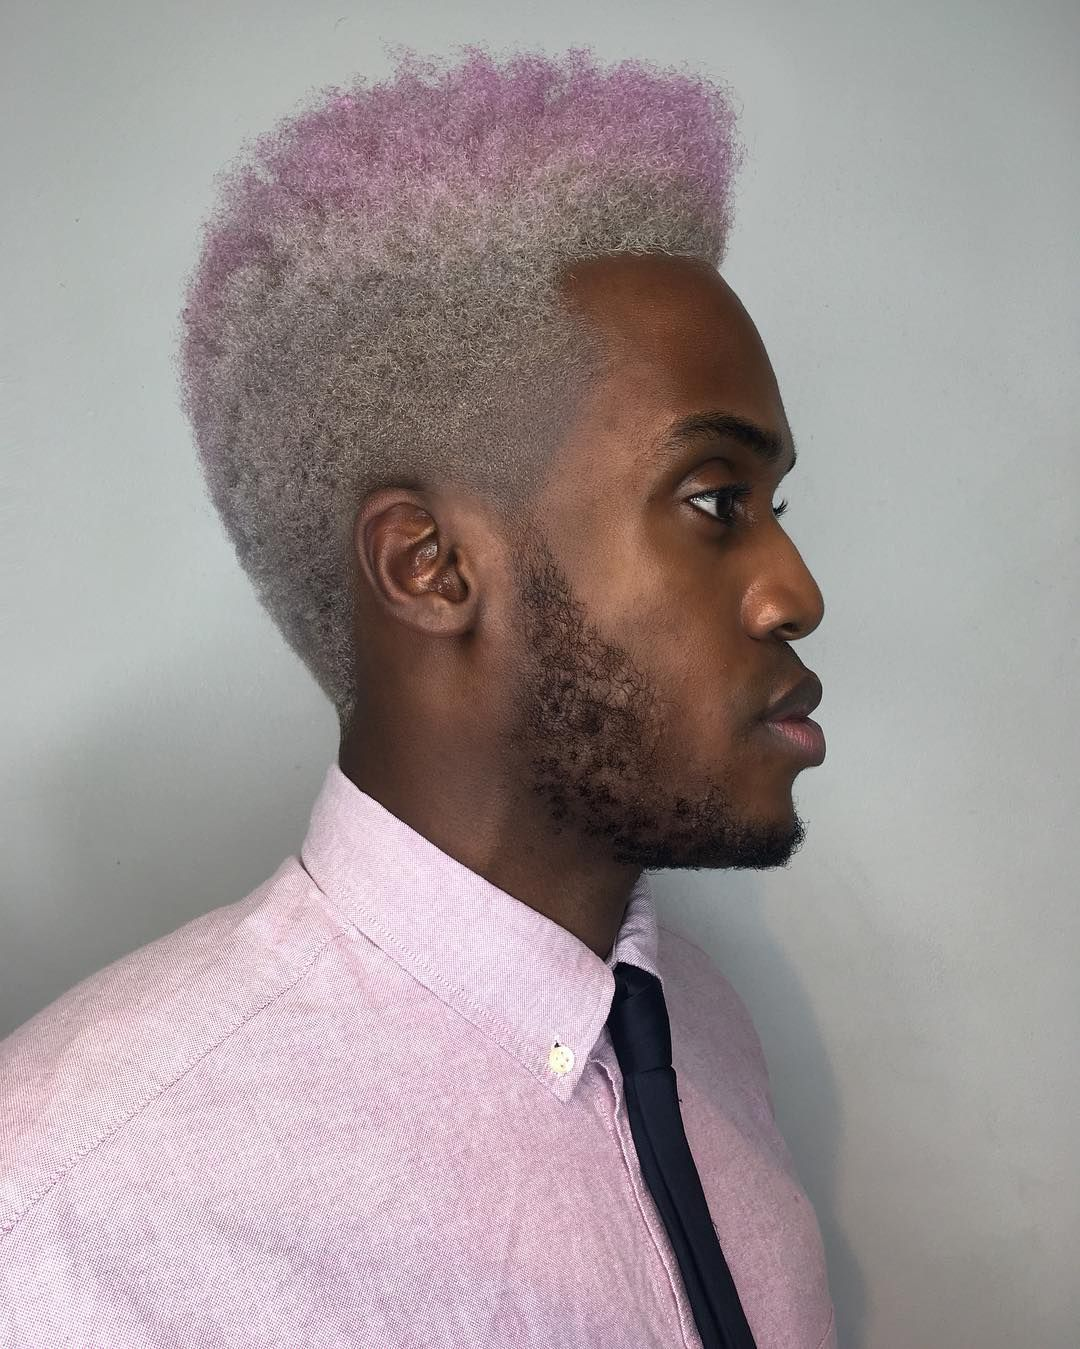 Afro High Top Fade With Silver To Pink Ombre Hair Color The Latest Hairstyles For Men And Women 2020 Hairstyleology Afro Fade Ombre Hair Color Silver Ombre Hair